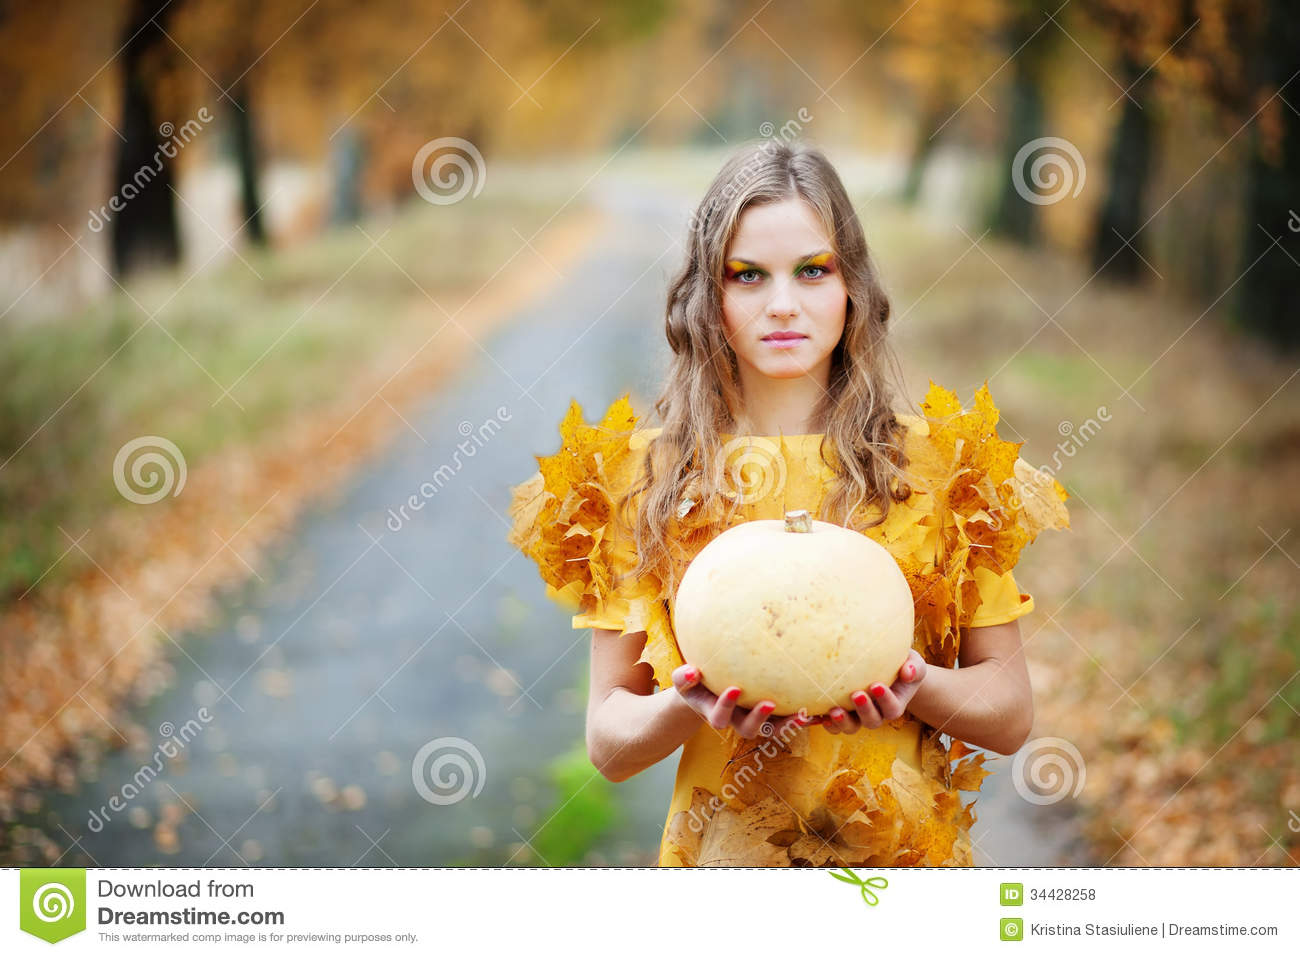 Beutiful beutiful girl holding pumpkin royalty free stock photos - image